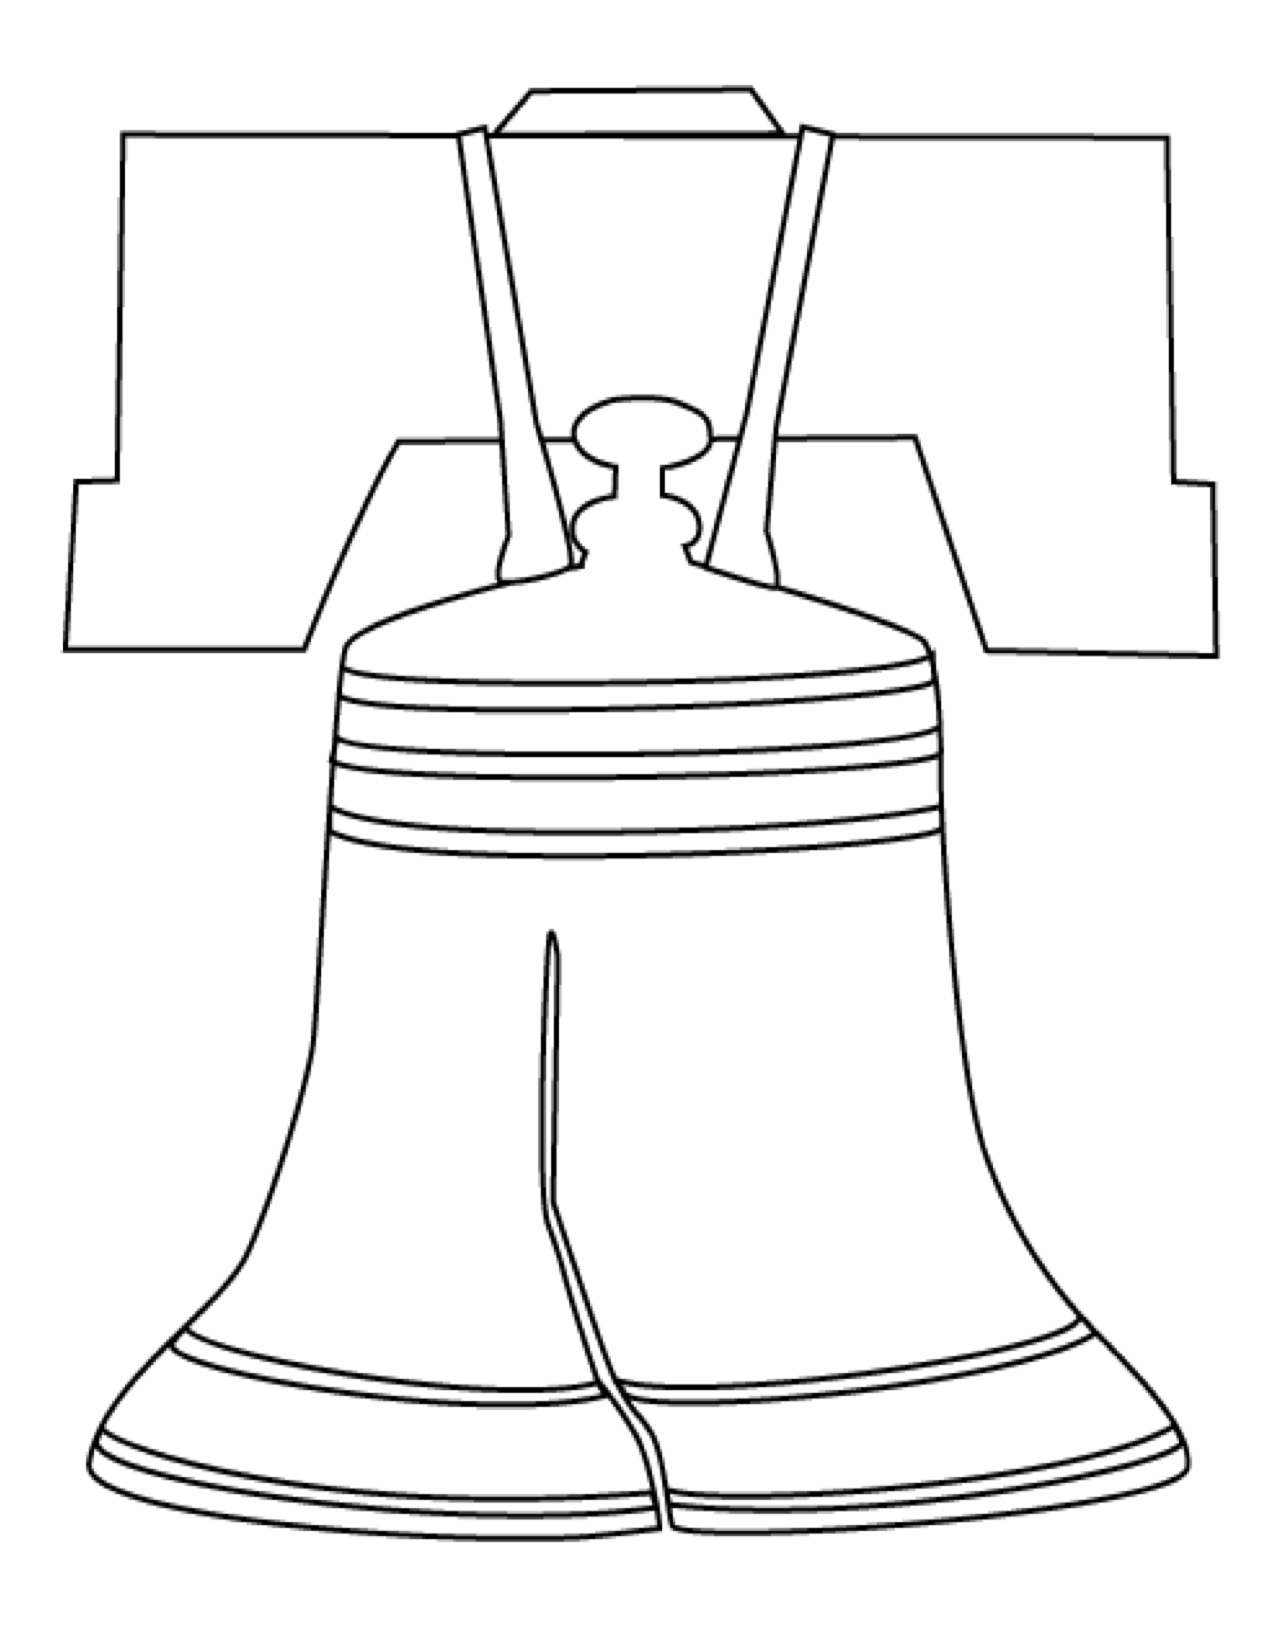 liberty bell coloring page coloring home